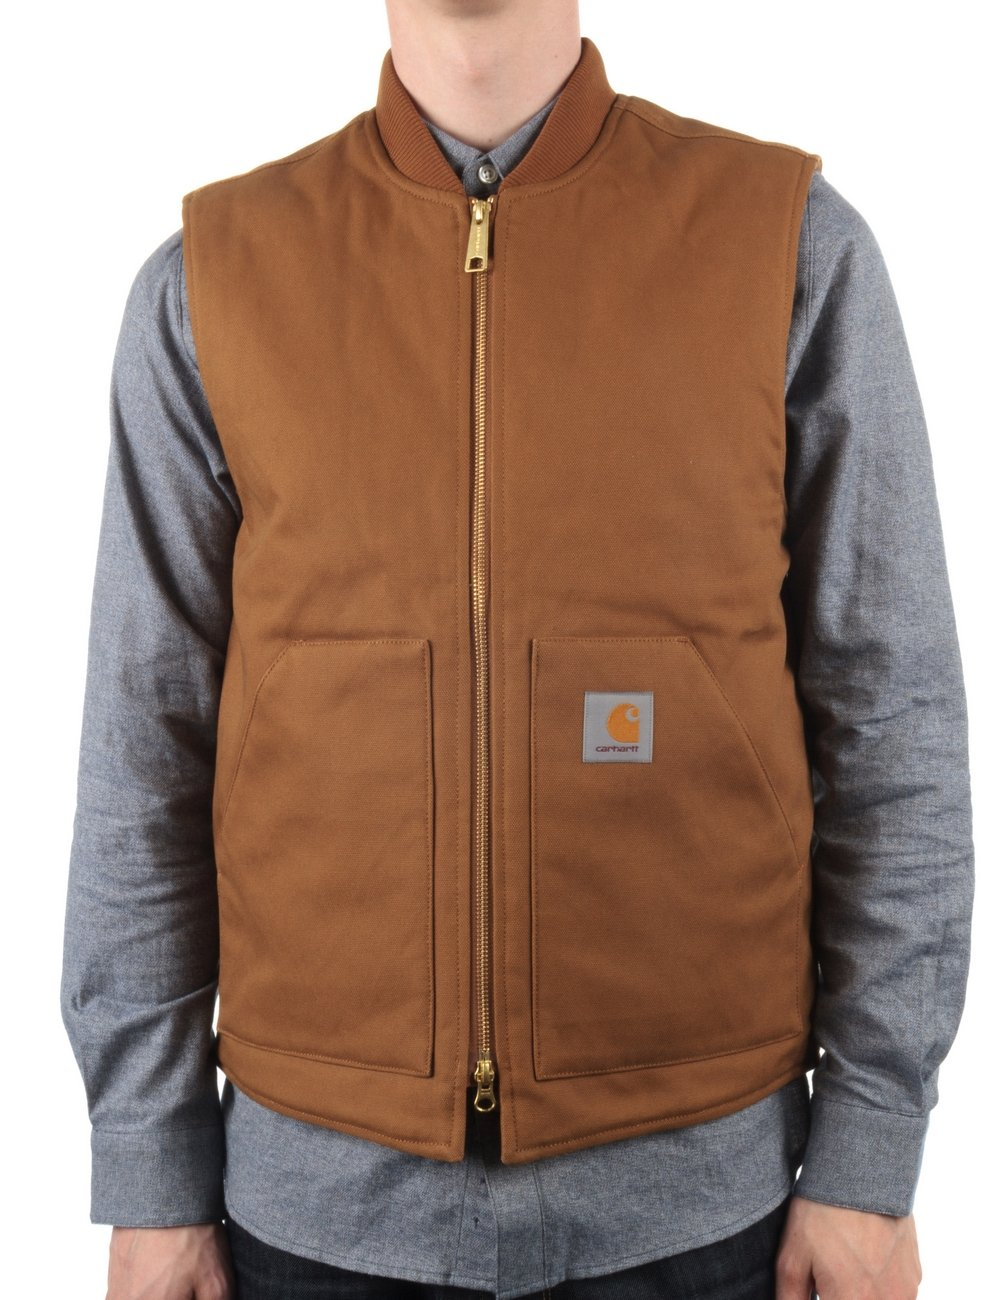 Carhartt clothing stores